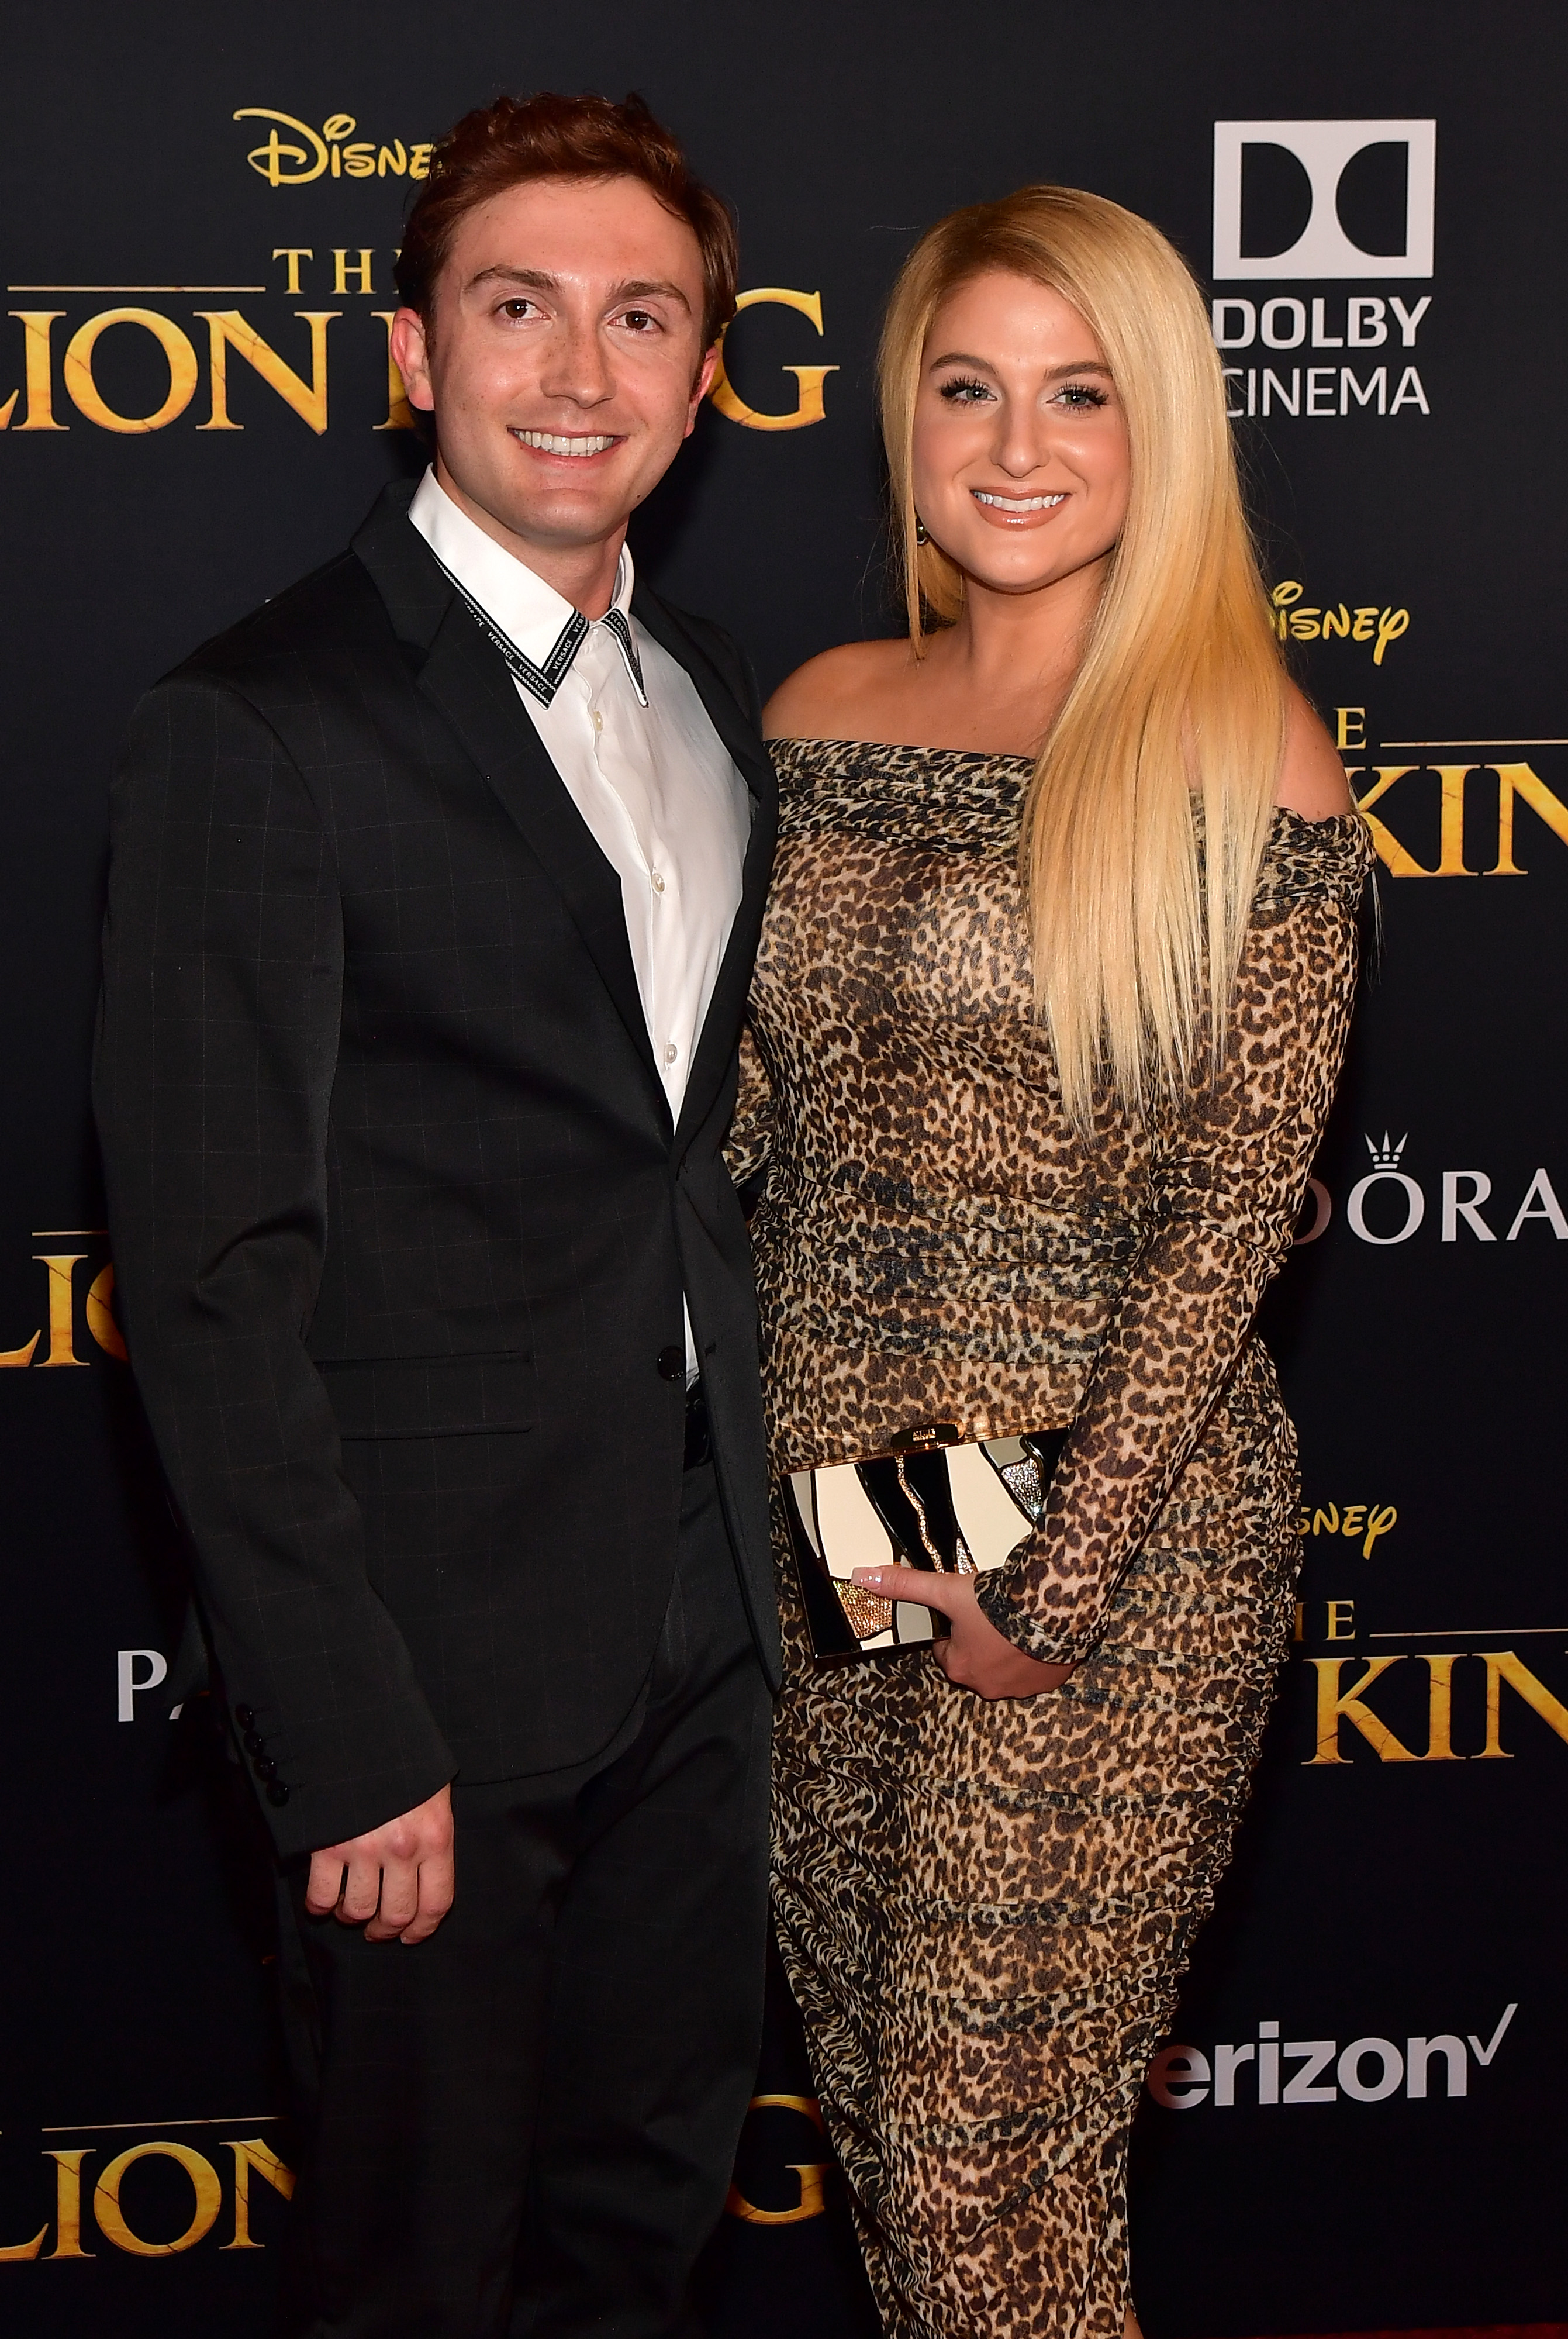 https://www j-14 com/posts/lion-king-red-carpet-premiere